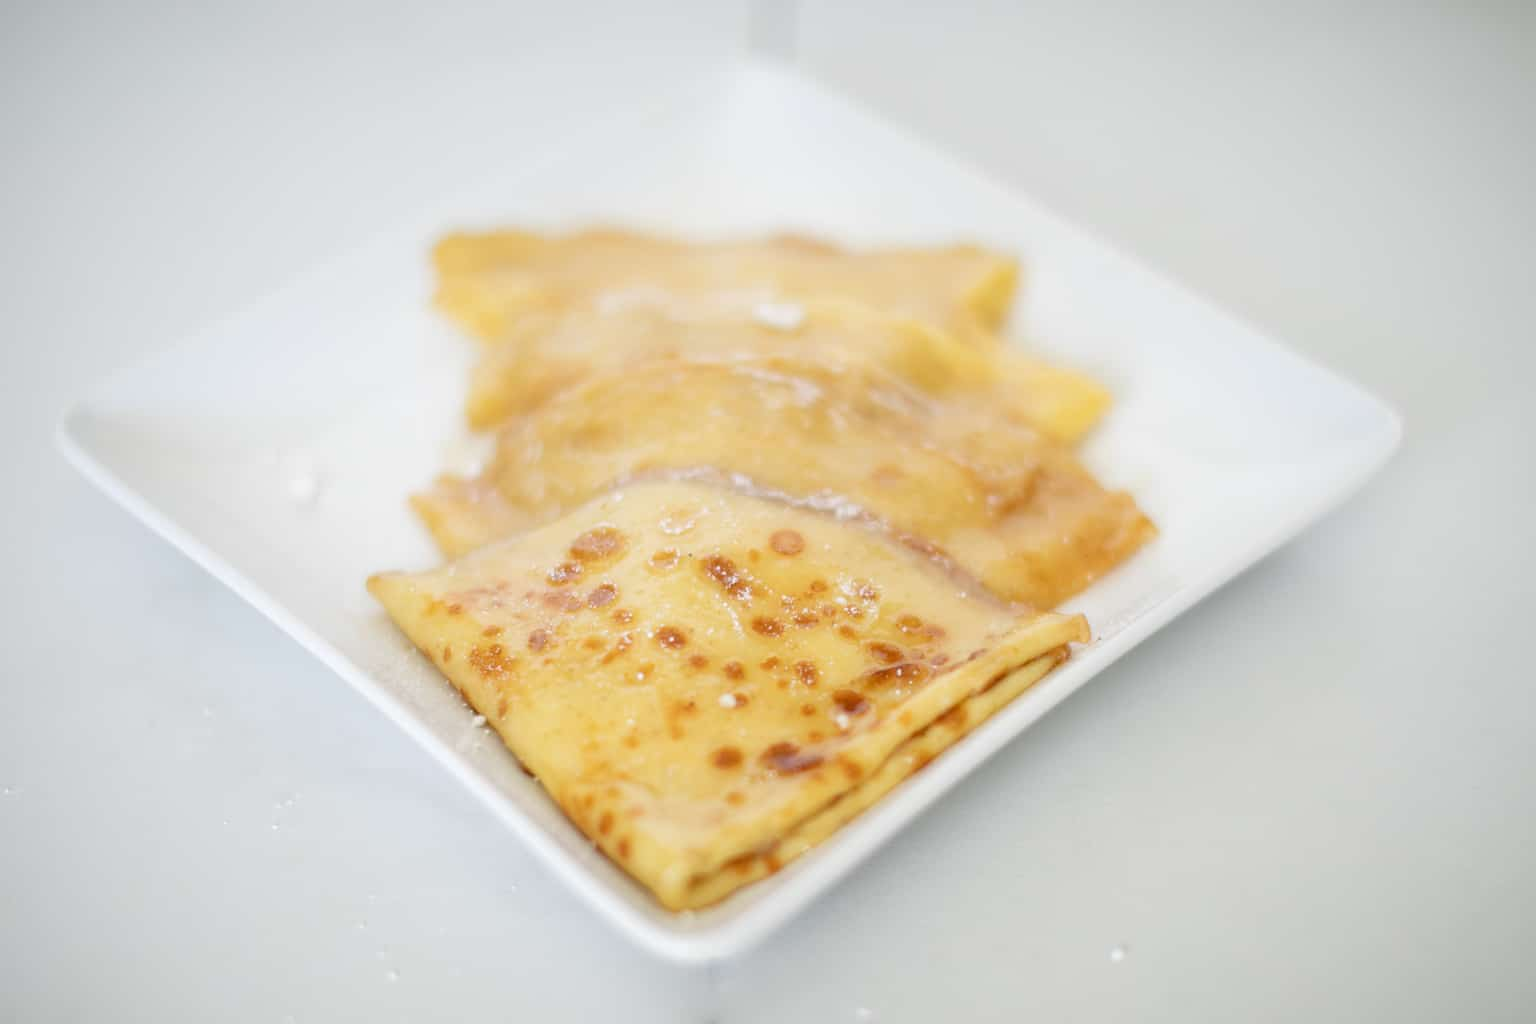 Prepared simple classic crepes suzette recipe in a plate